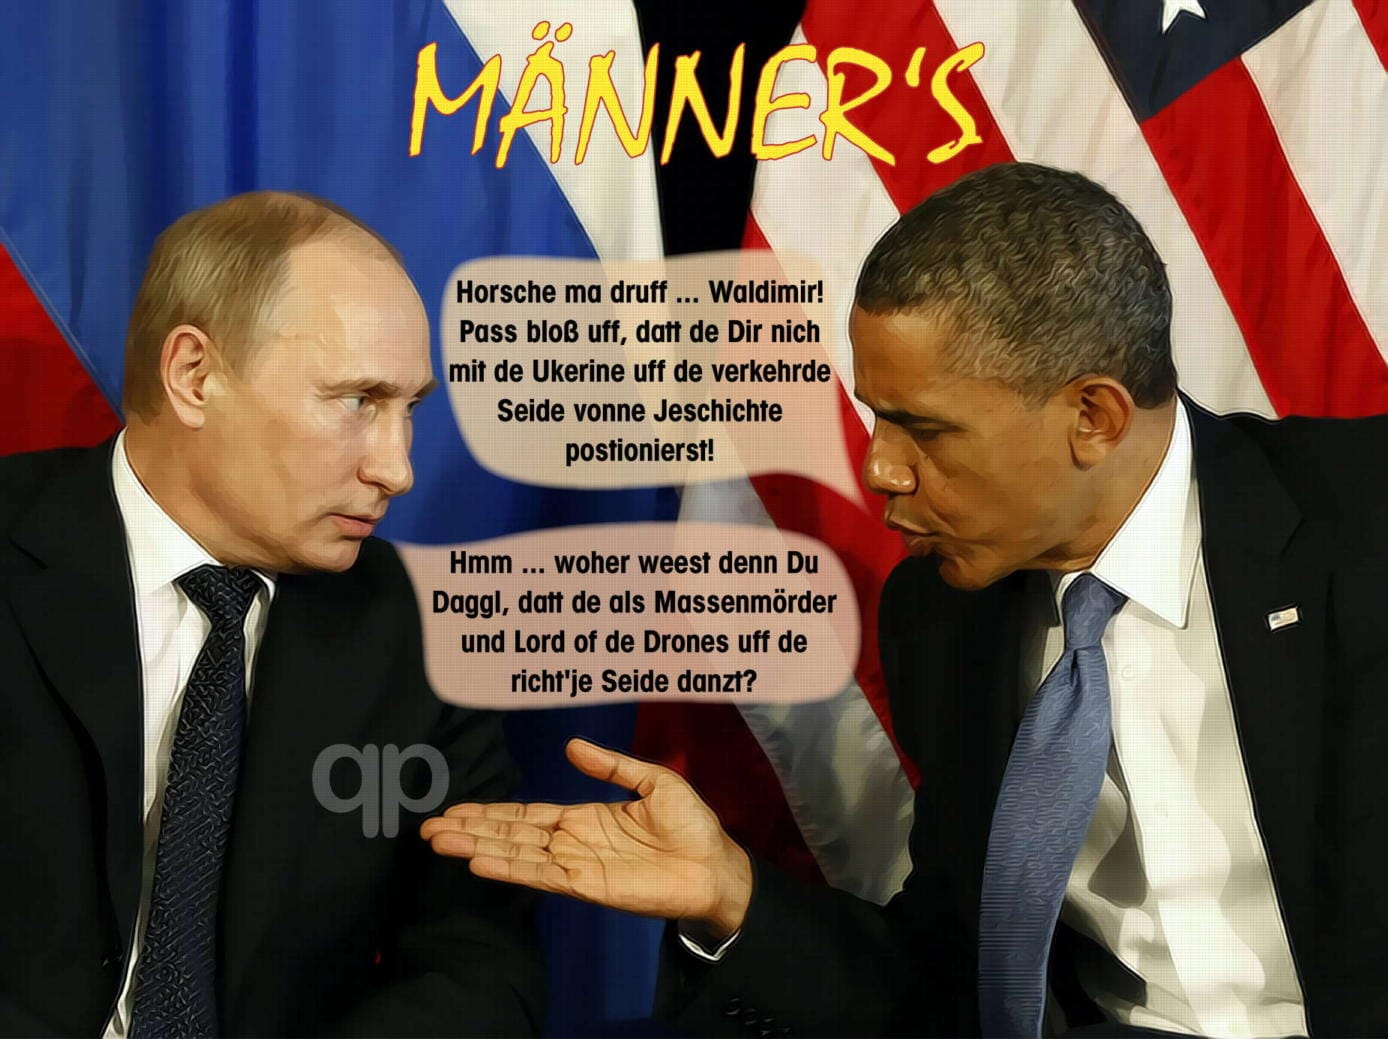 Putin-obama-mens-talk-about-ukraine-and-history-Kopie